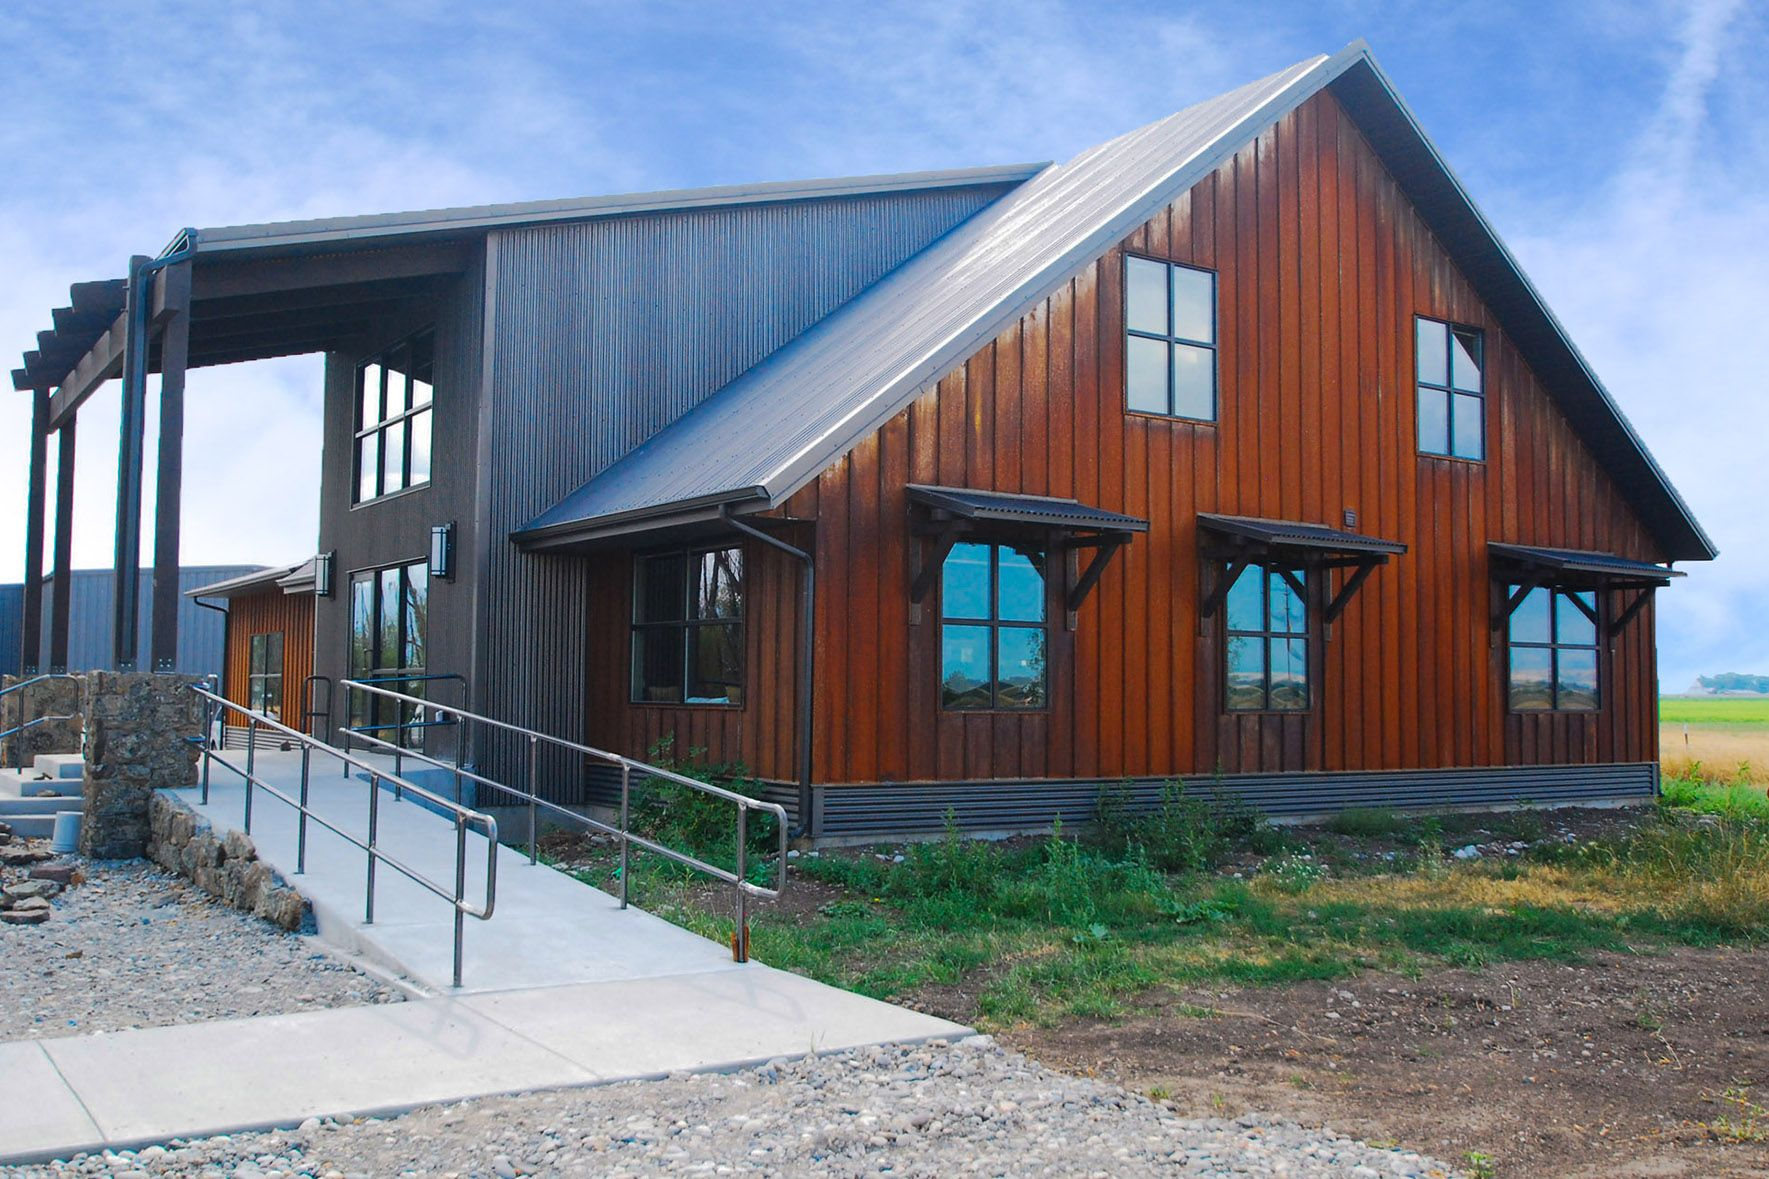 Natural Looking Buildings : Natural weathering steel ultra batten siding on office